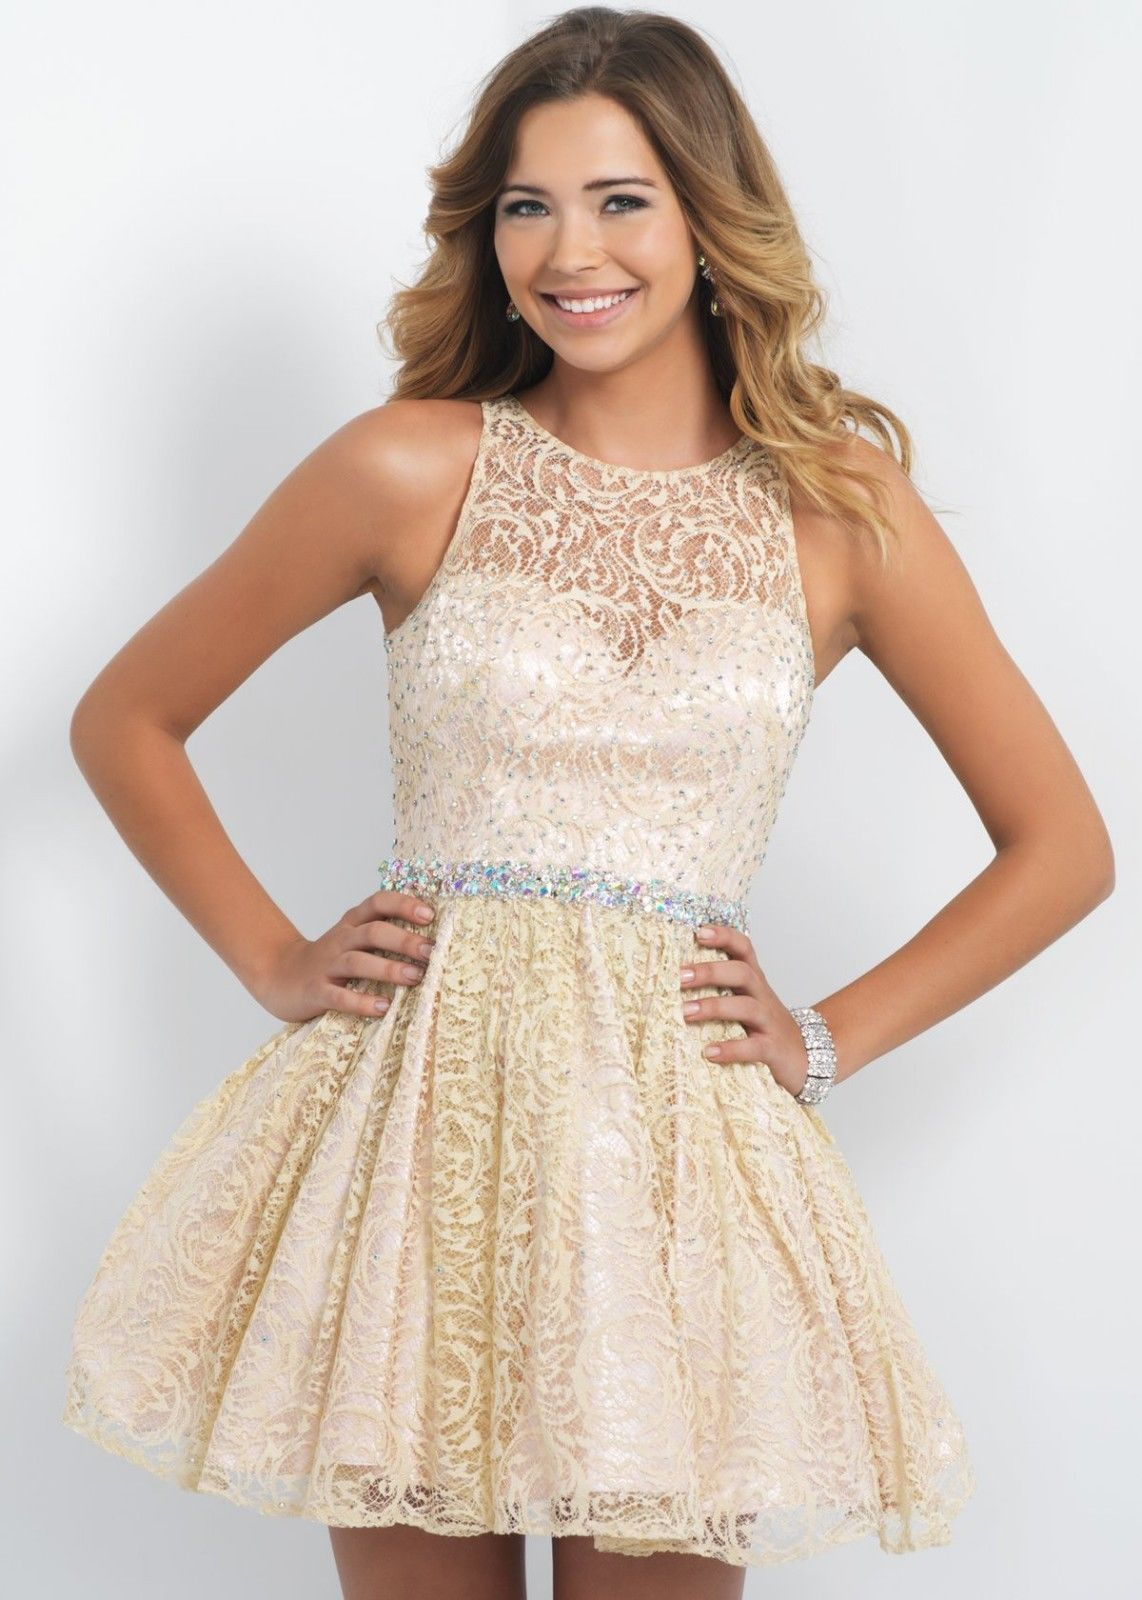 Sexy Champagne Lace Short Prom Dress Homecoming Party Dress Cocktail ...